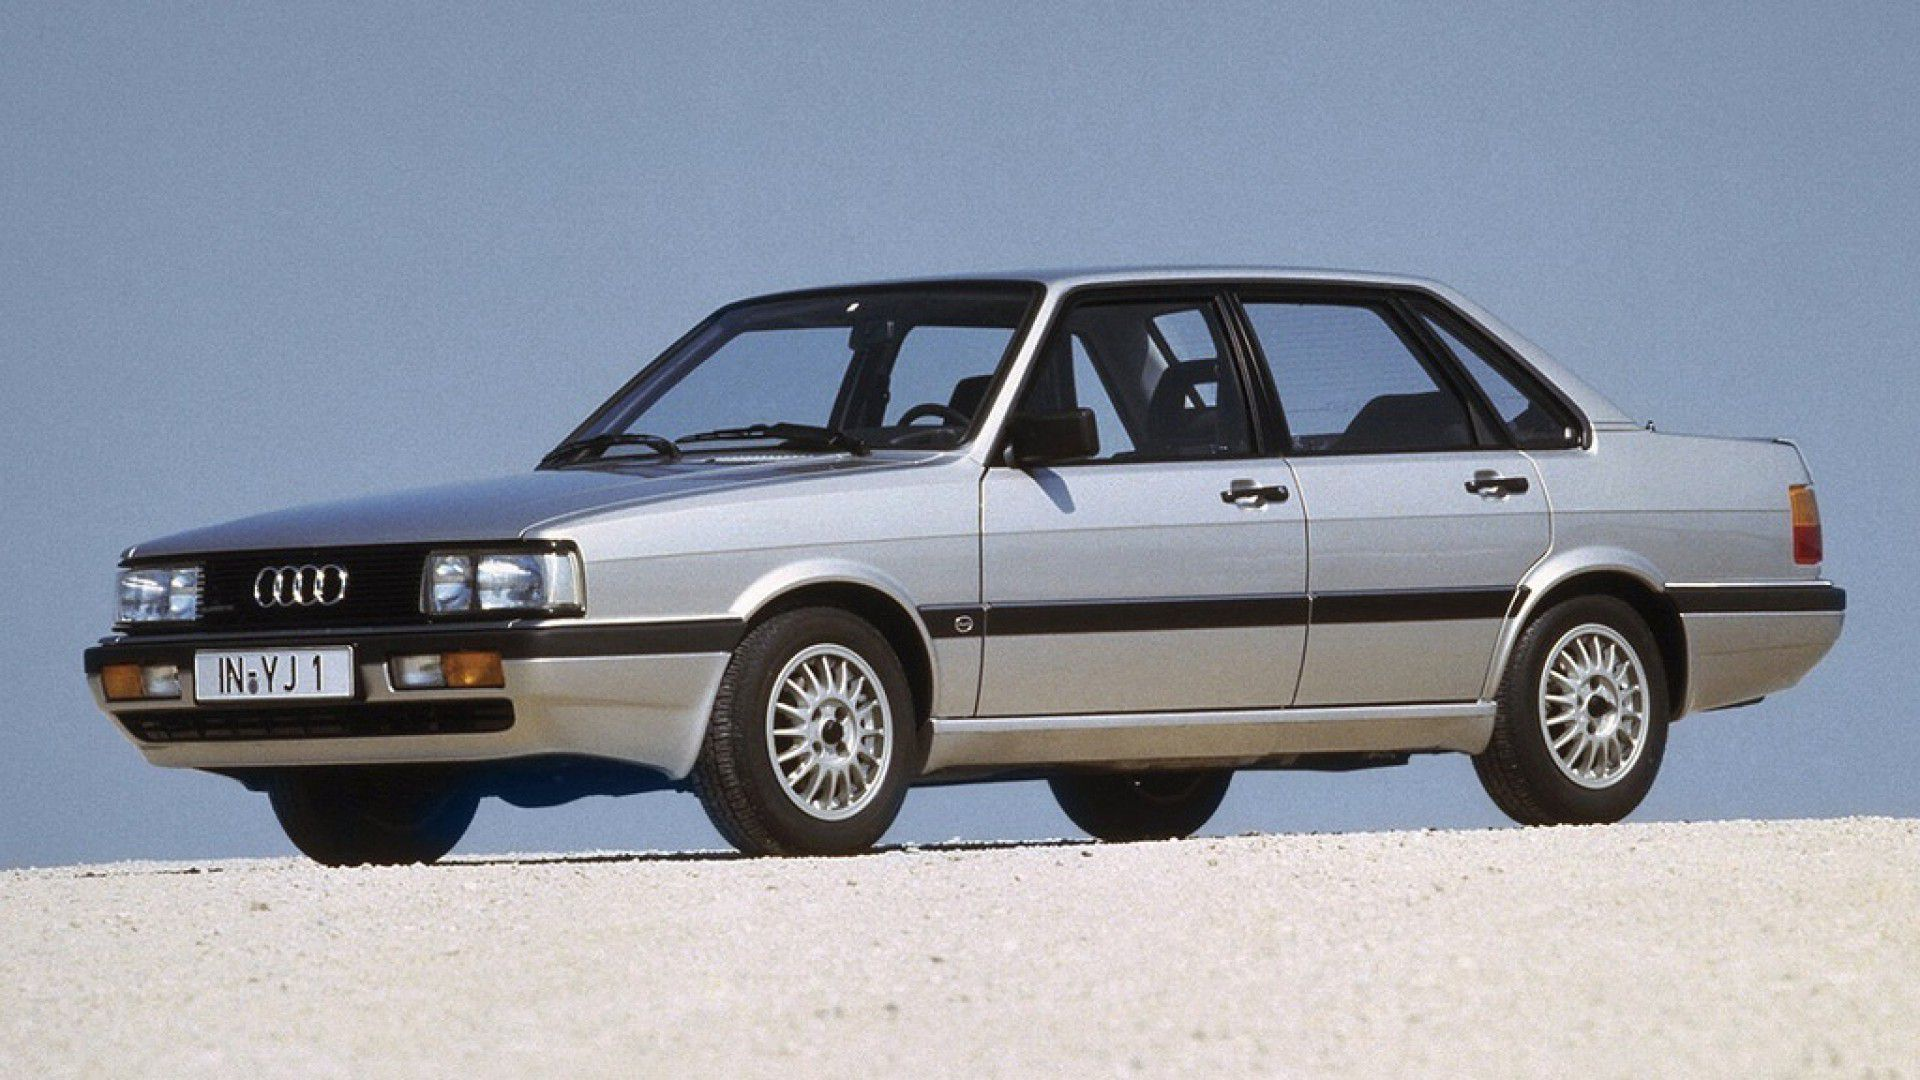 Audi 90 (1984 to 1987)